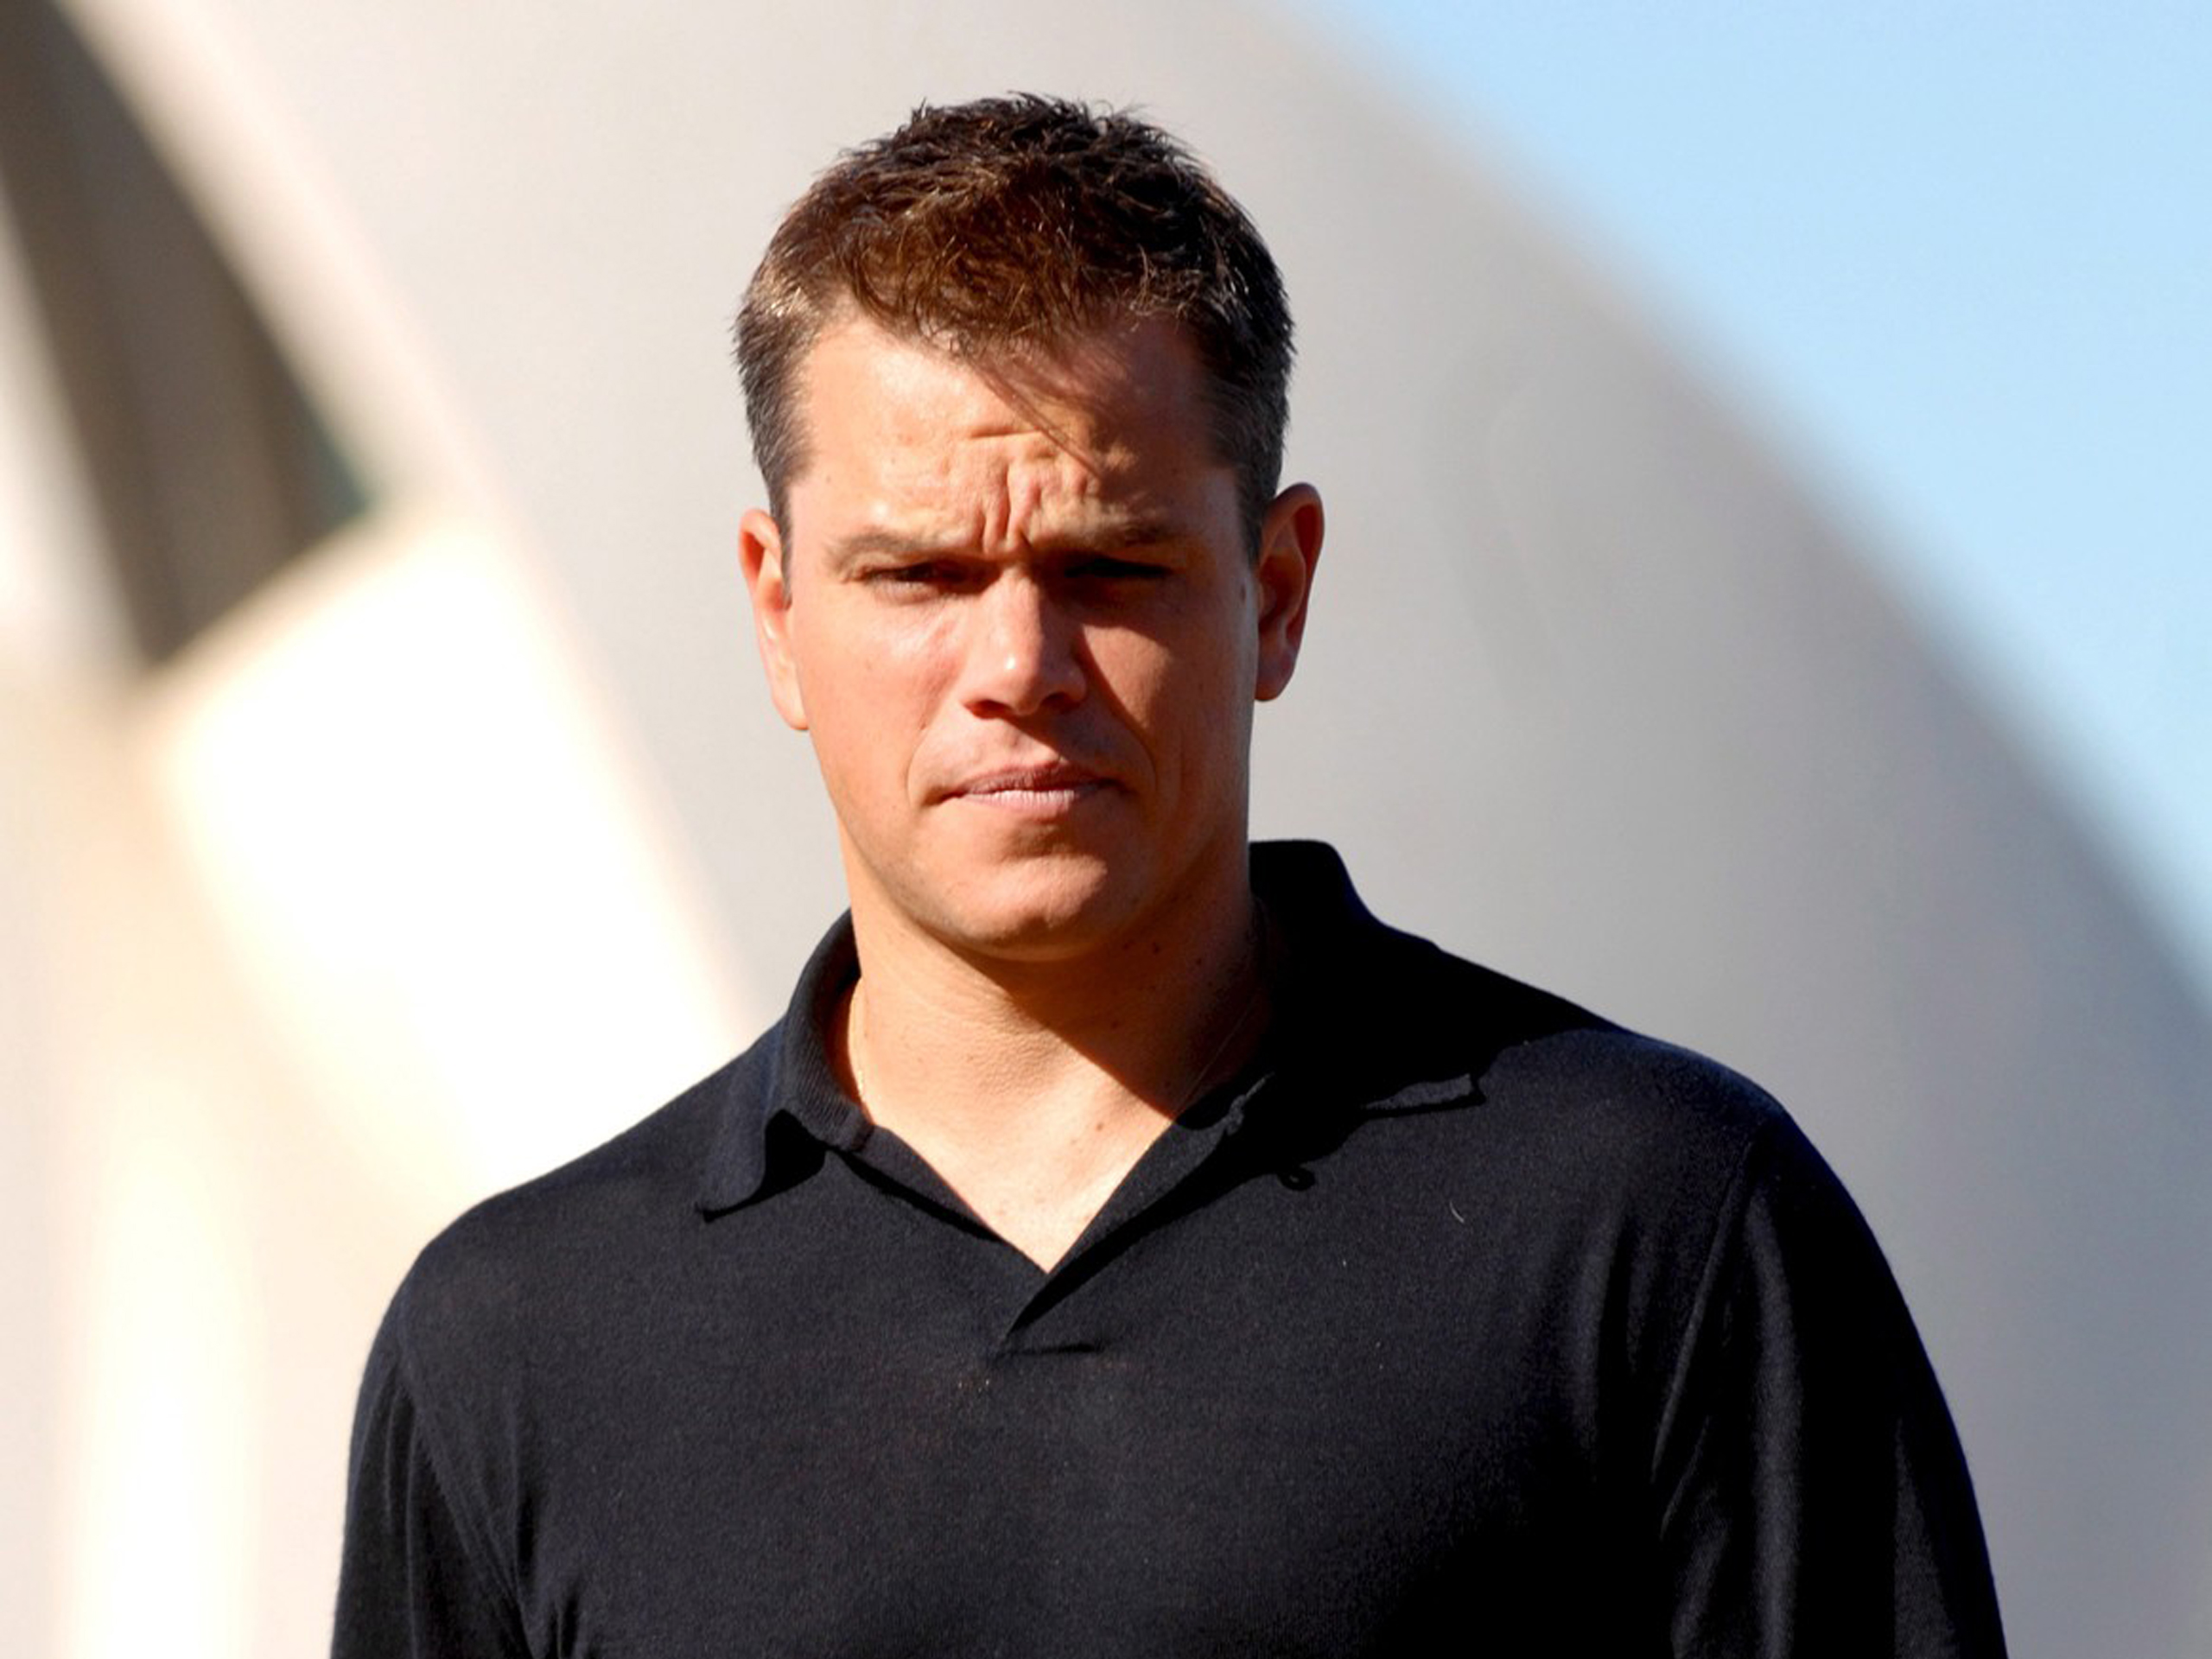 Matt Damon Wallpaper Hd 3 Thumb